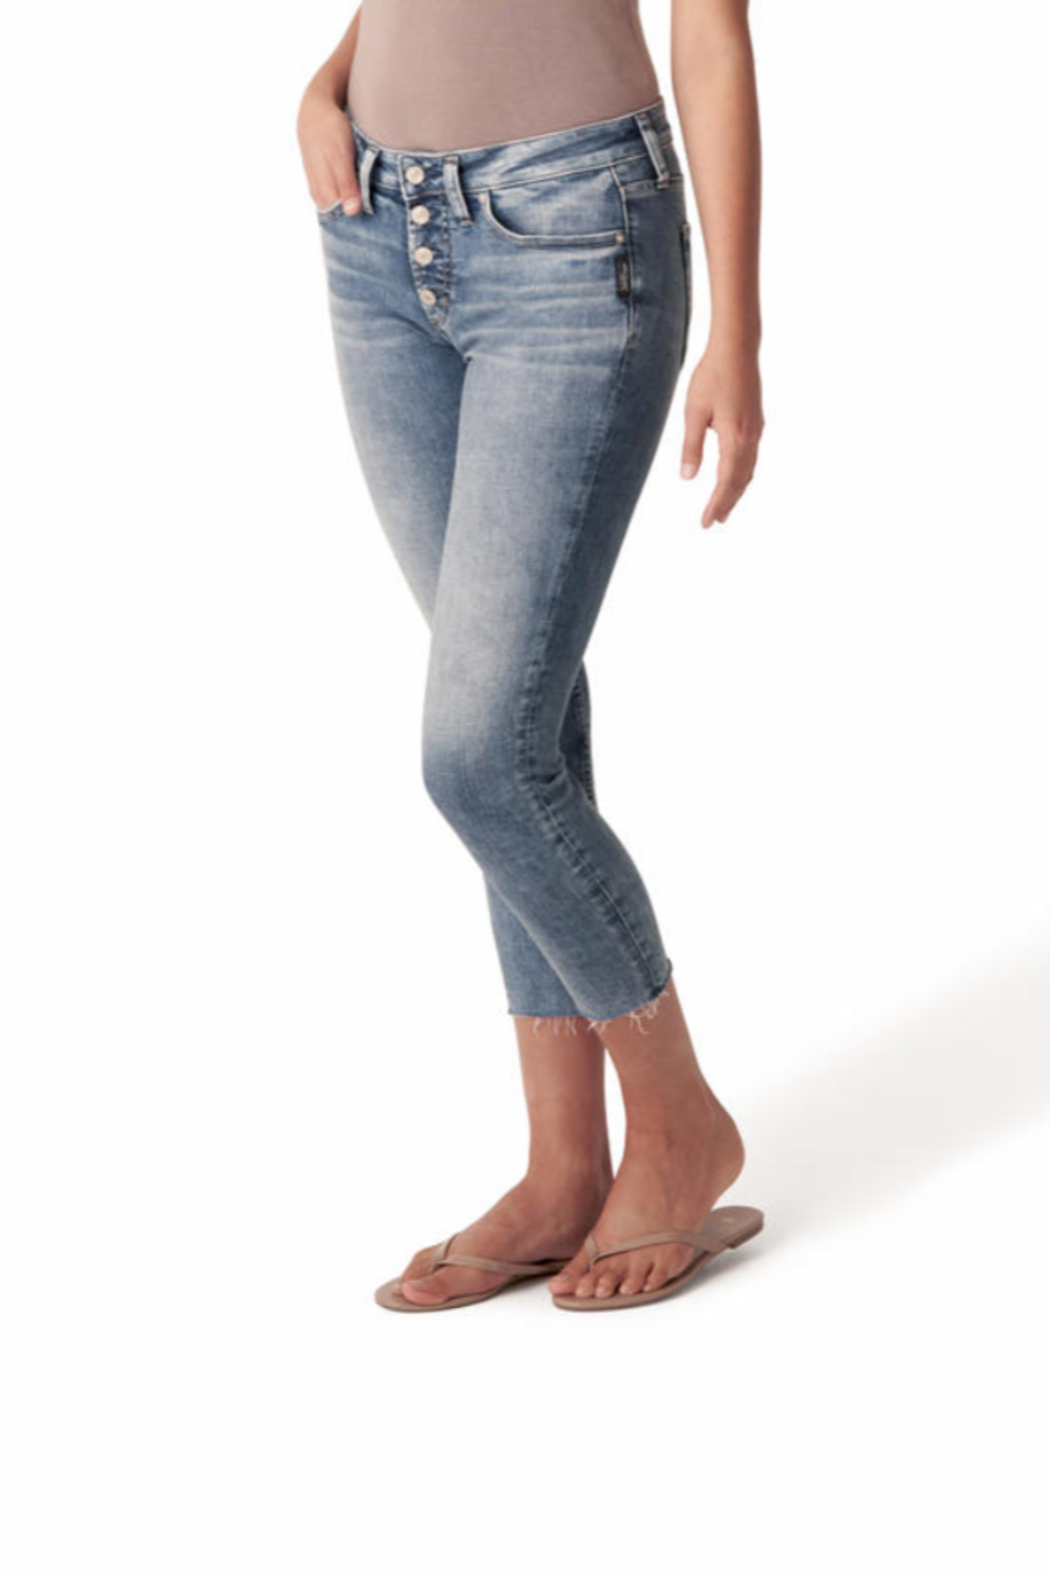 Silver Jeans Co. 4 Button Summer Denim Jeans - Side Cropped Image